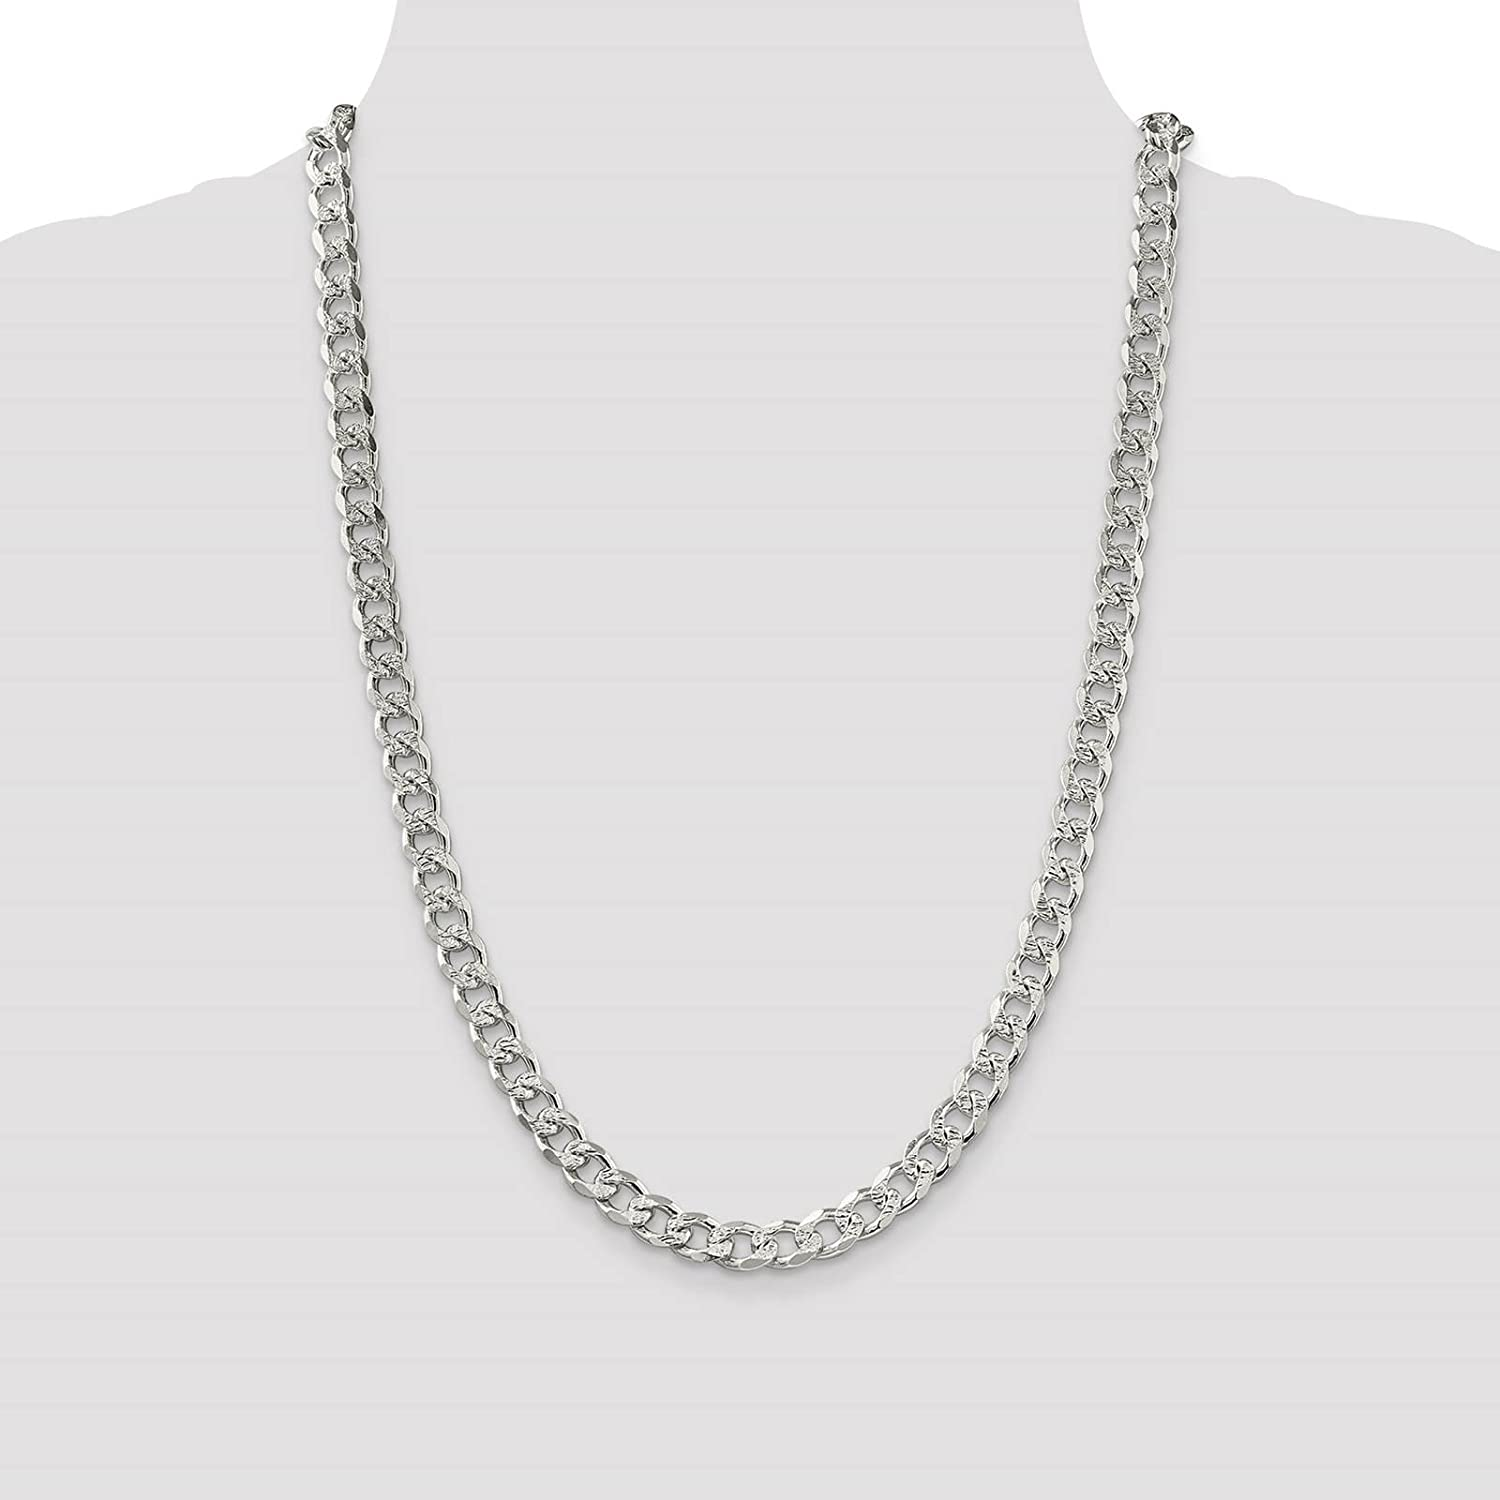 925 Sterling Silver 8mm Solid Polished Pave Curb Link Chain Necklace 8-24